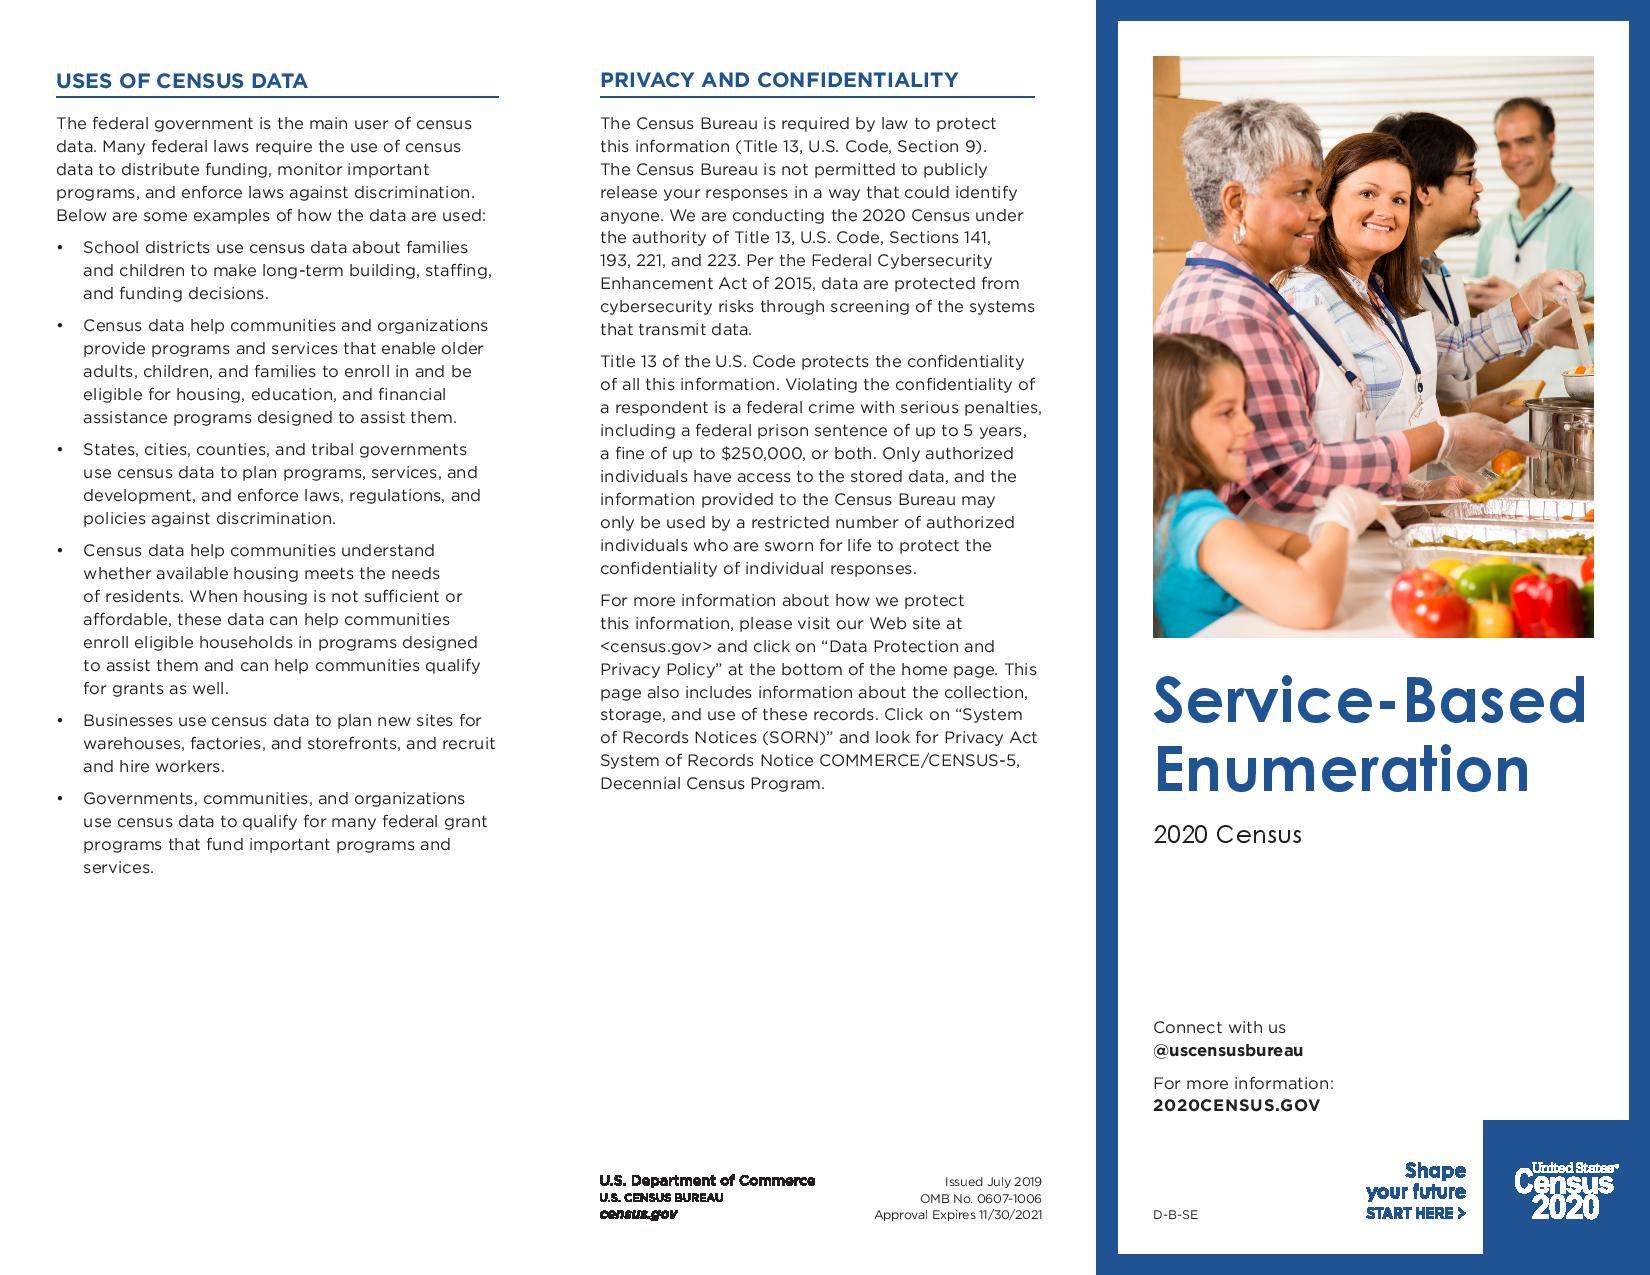 Service-Based Enumeration Brochure_D-B-SE